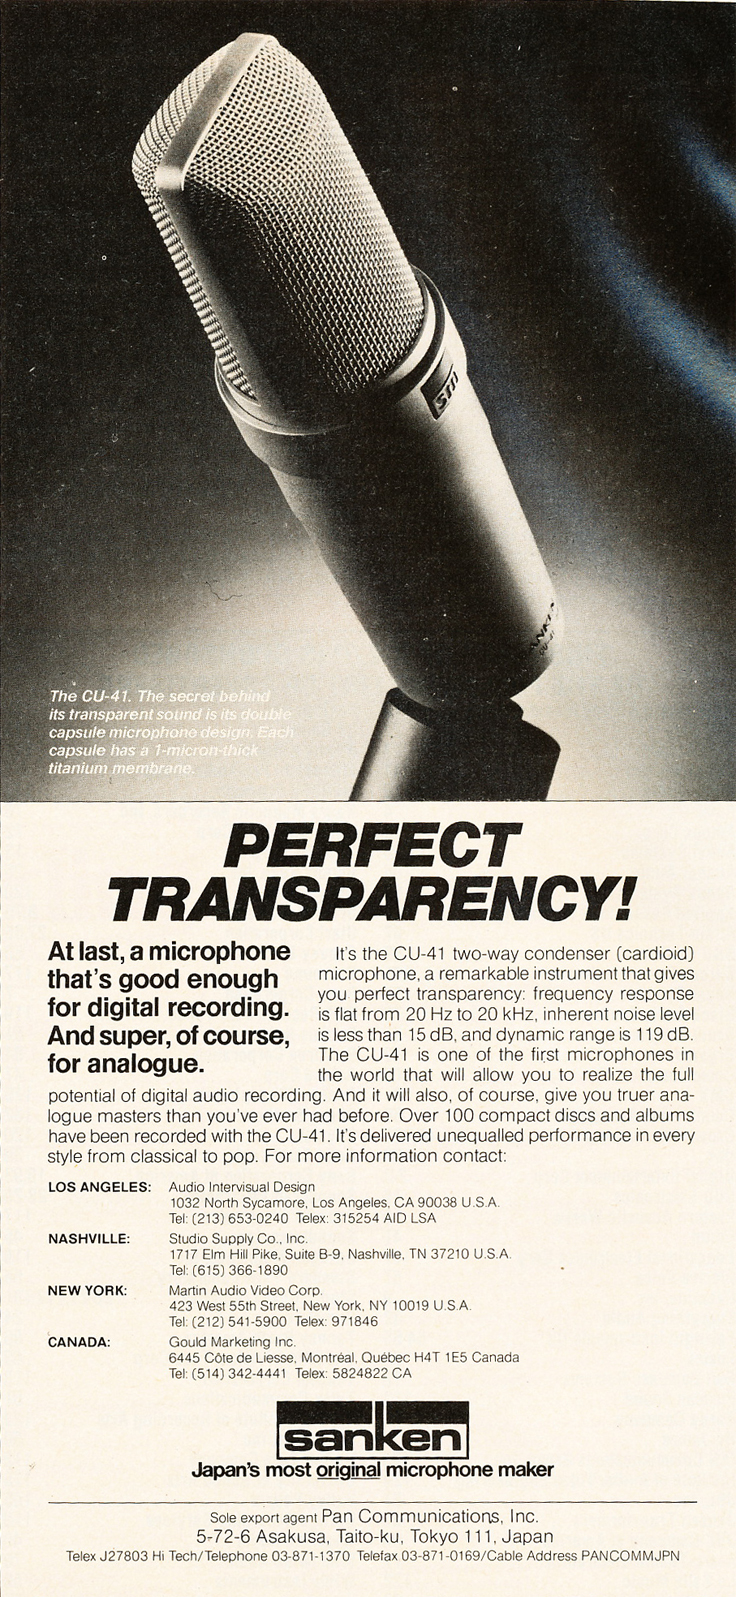 1986 ad for Sanken in Reel2ReelTexas.com's vintage recording collection